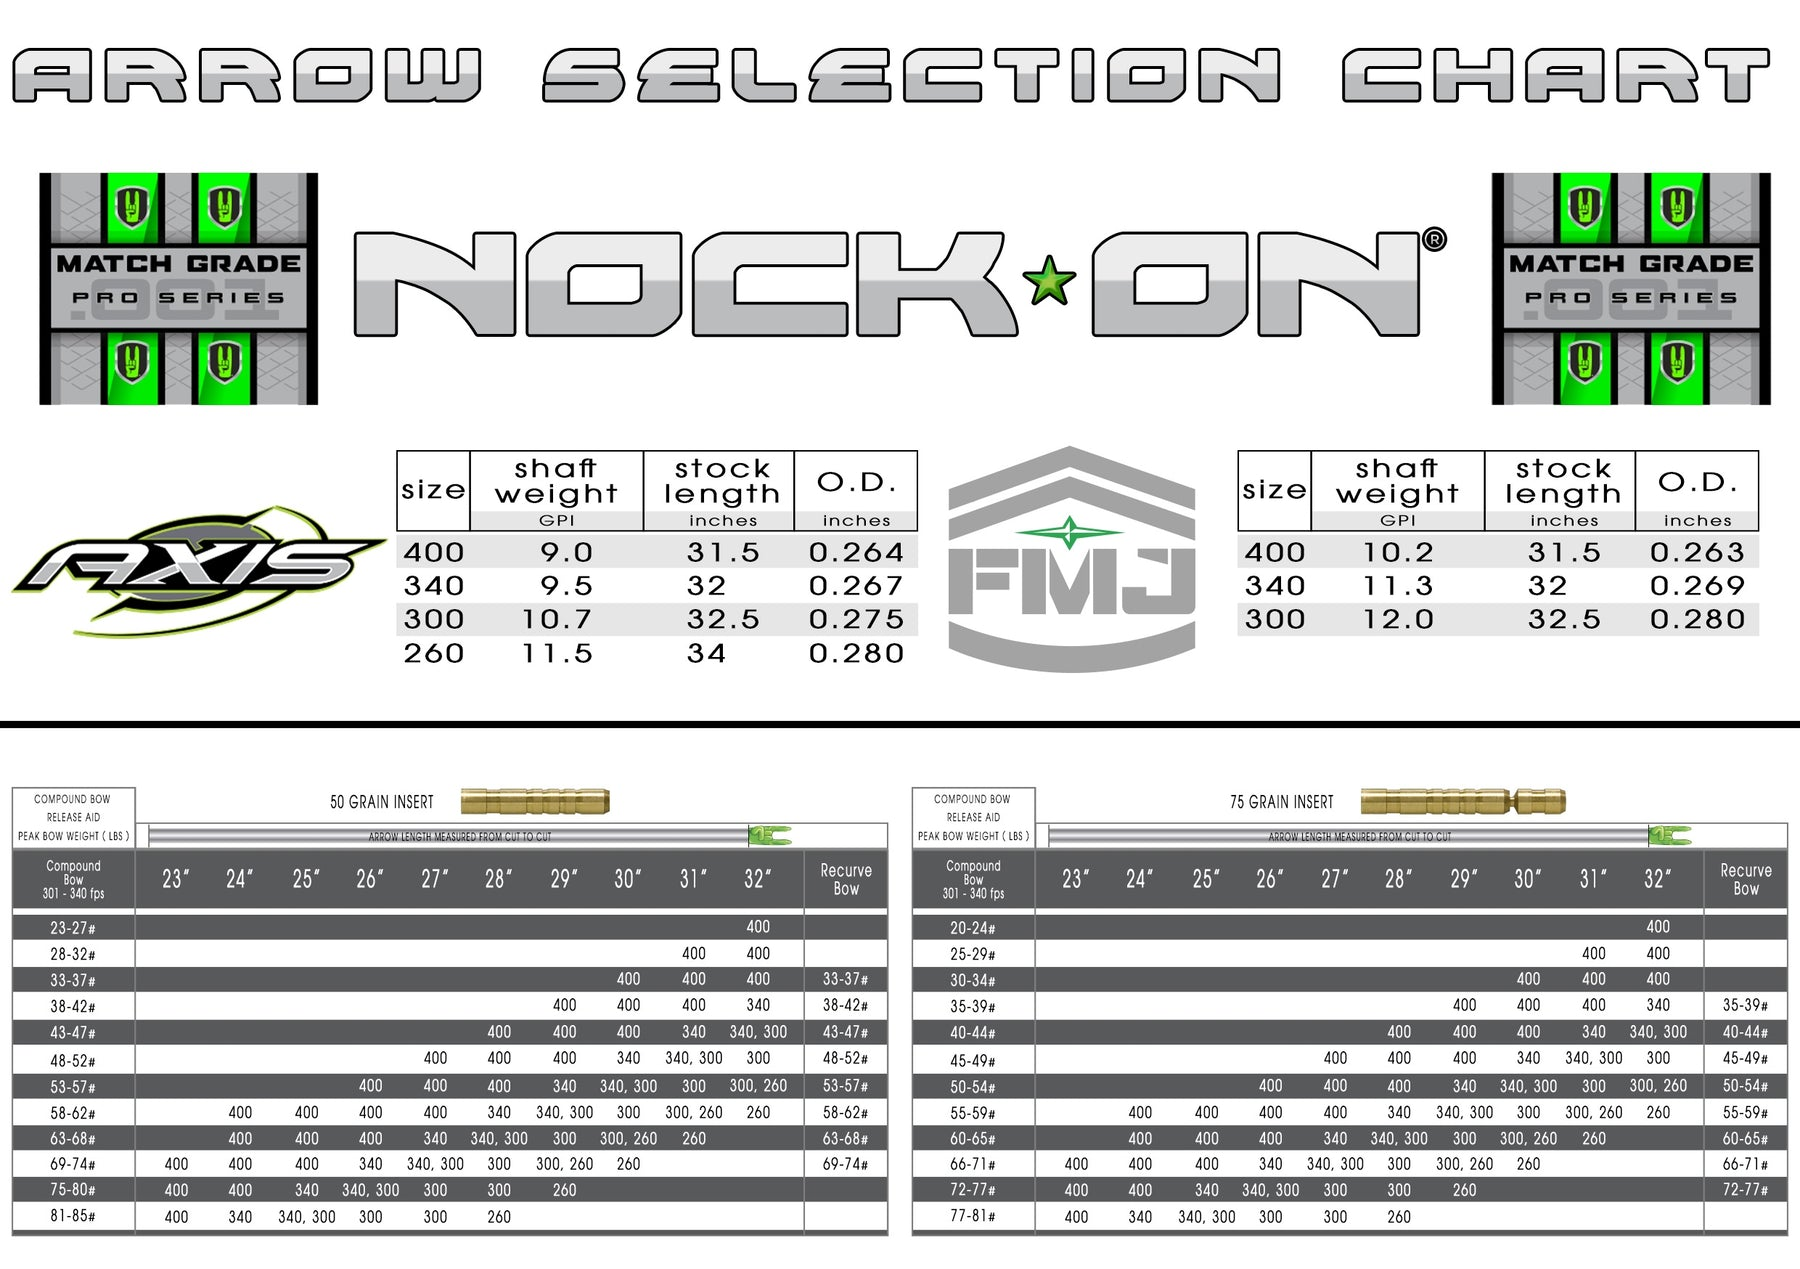 NEW with Wraps//AAE Pro Max Vanes 6 Easton FMJ PRO Match Grade 5mm 250 Arrows